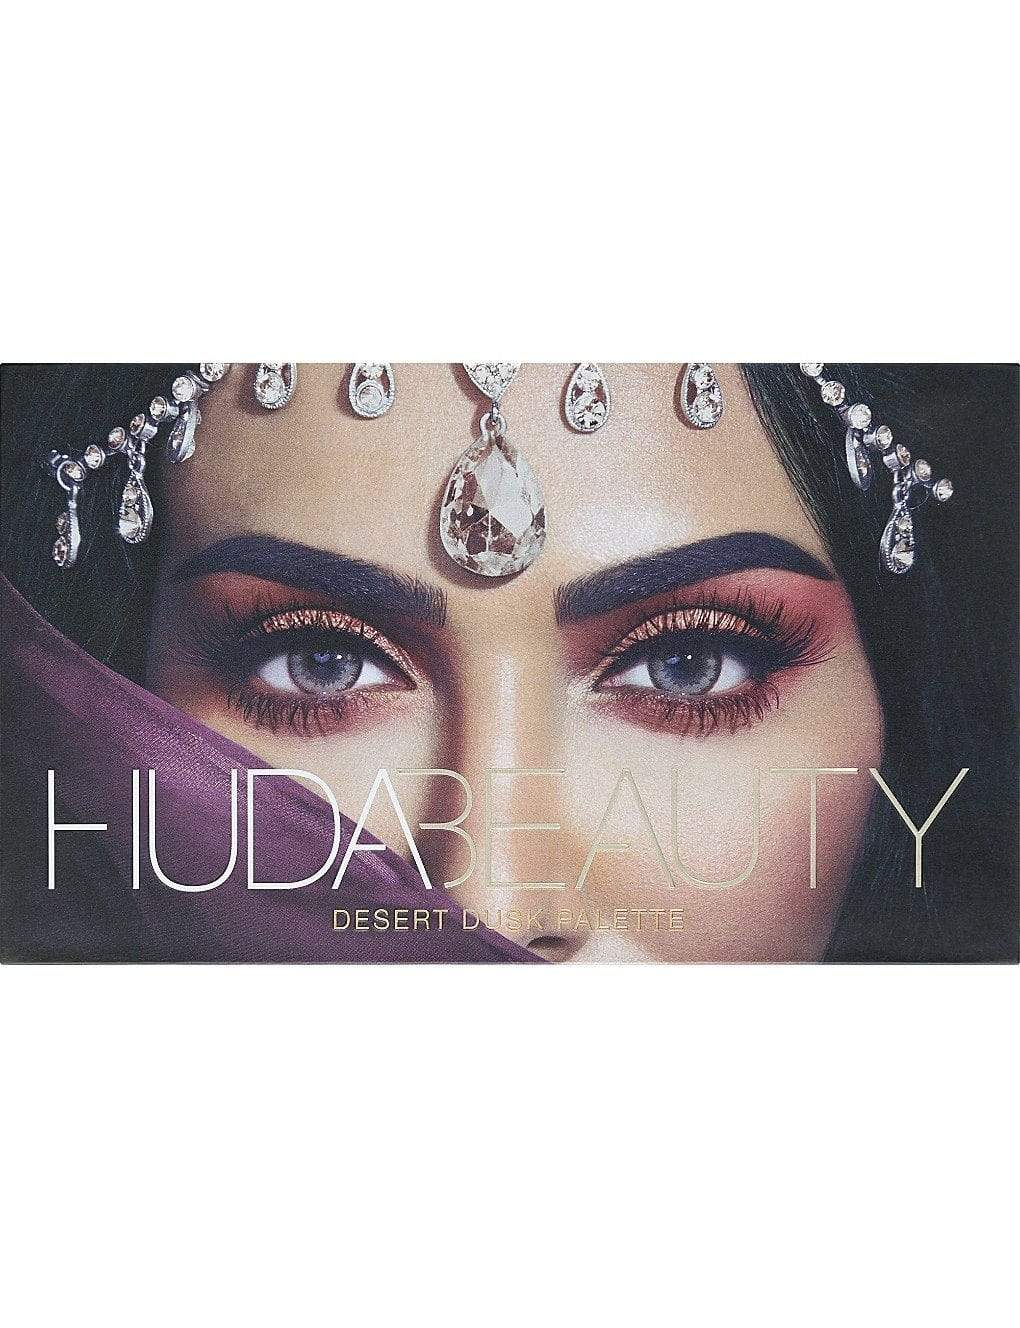 Huda Beauty Desert Dusk Eyeshadow Palette, Eyeshadow, London Loves Beauty